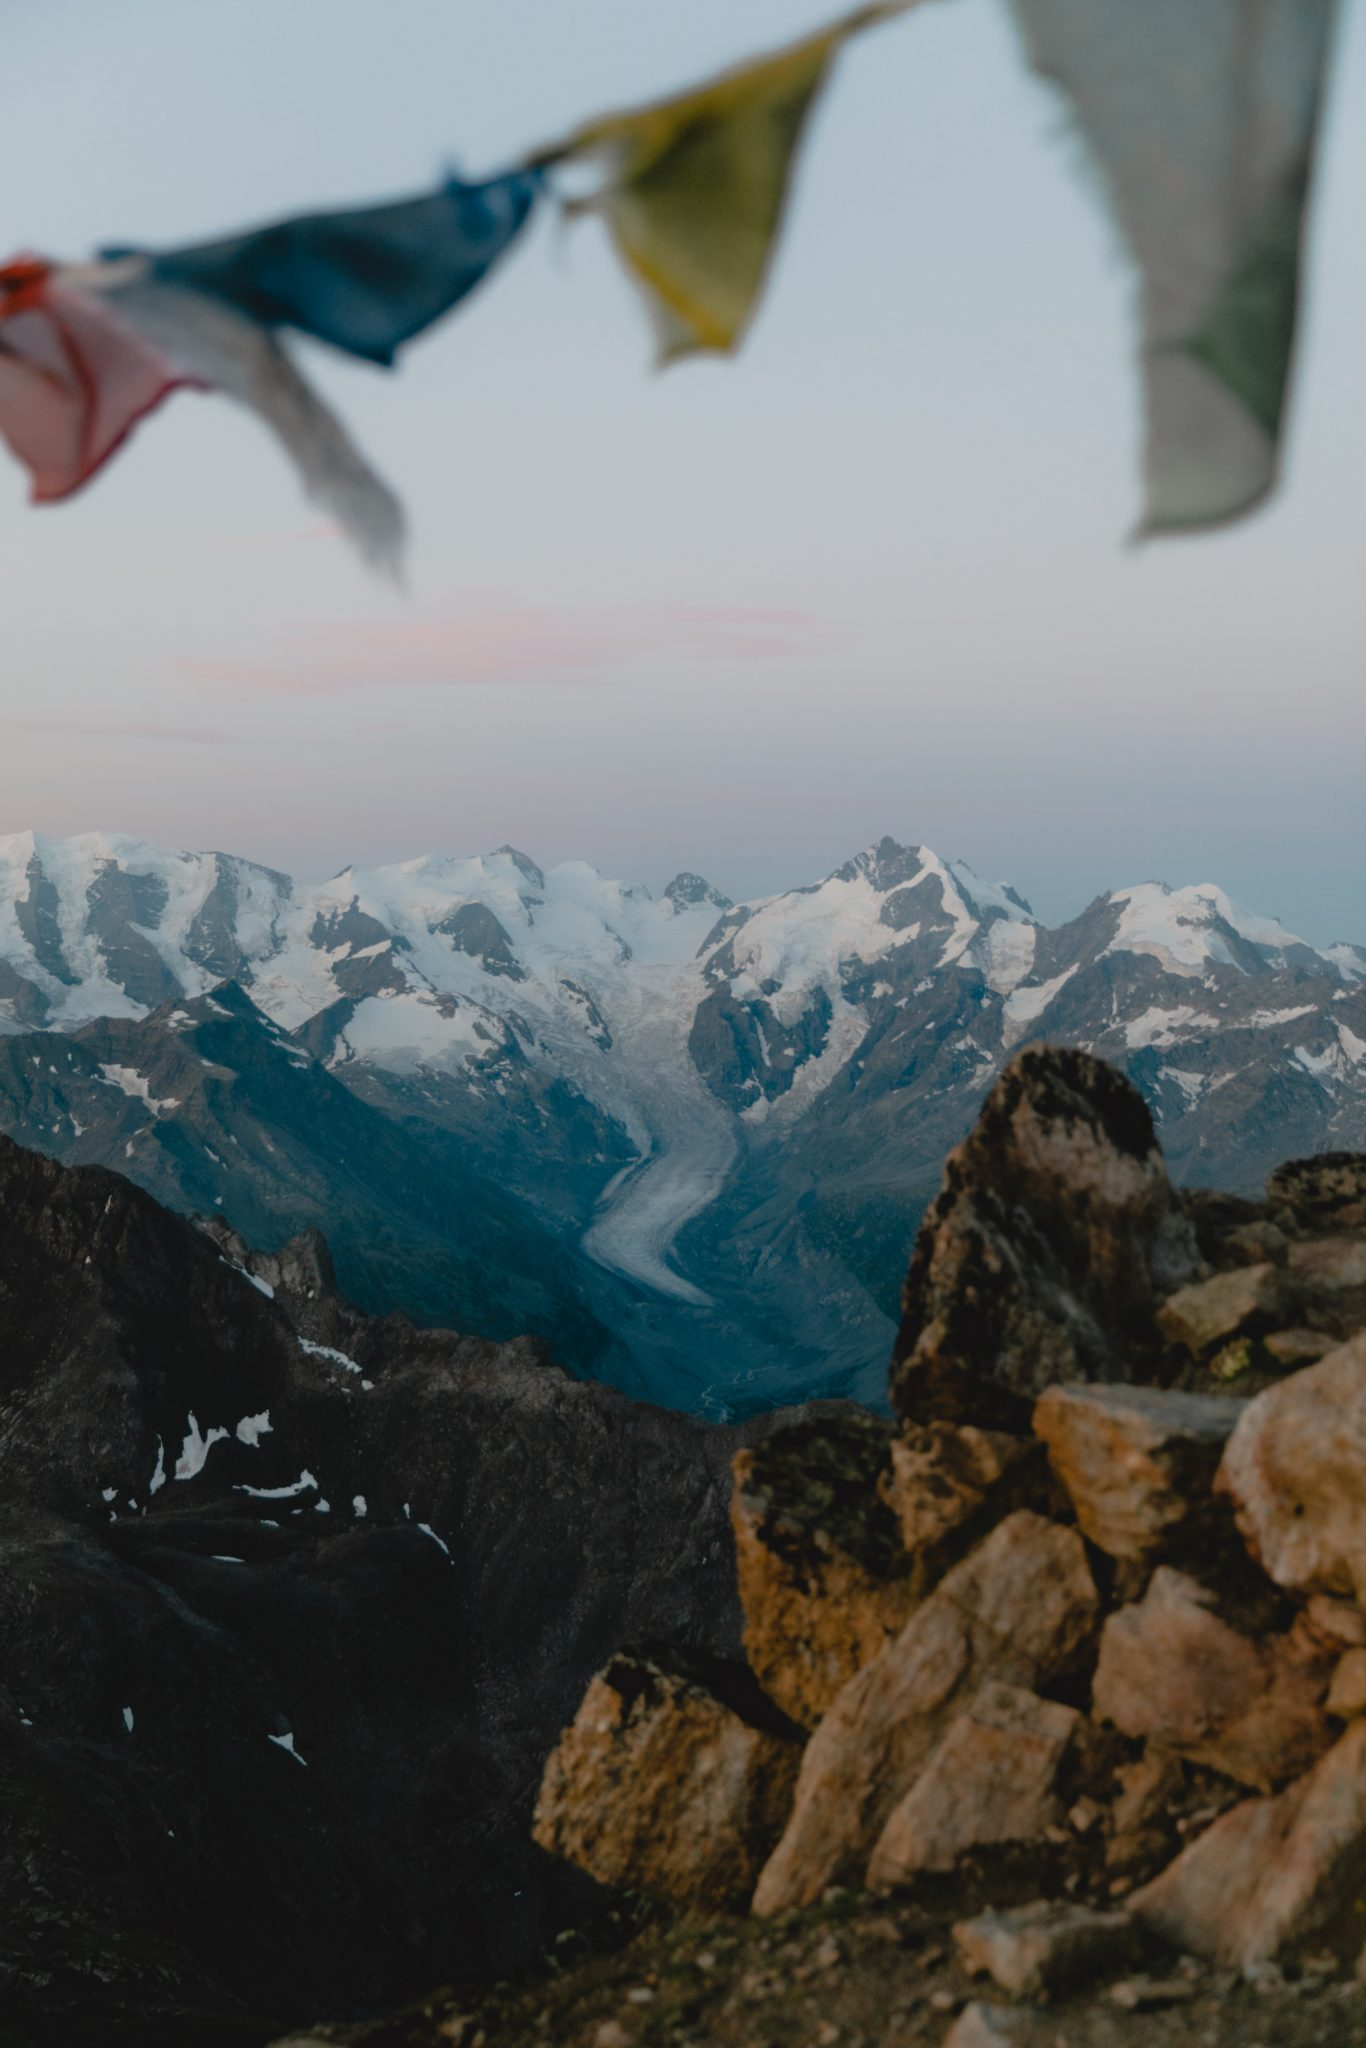 Mountains with glacier and flags in the foreground